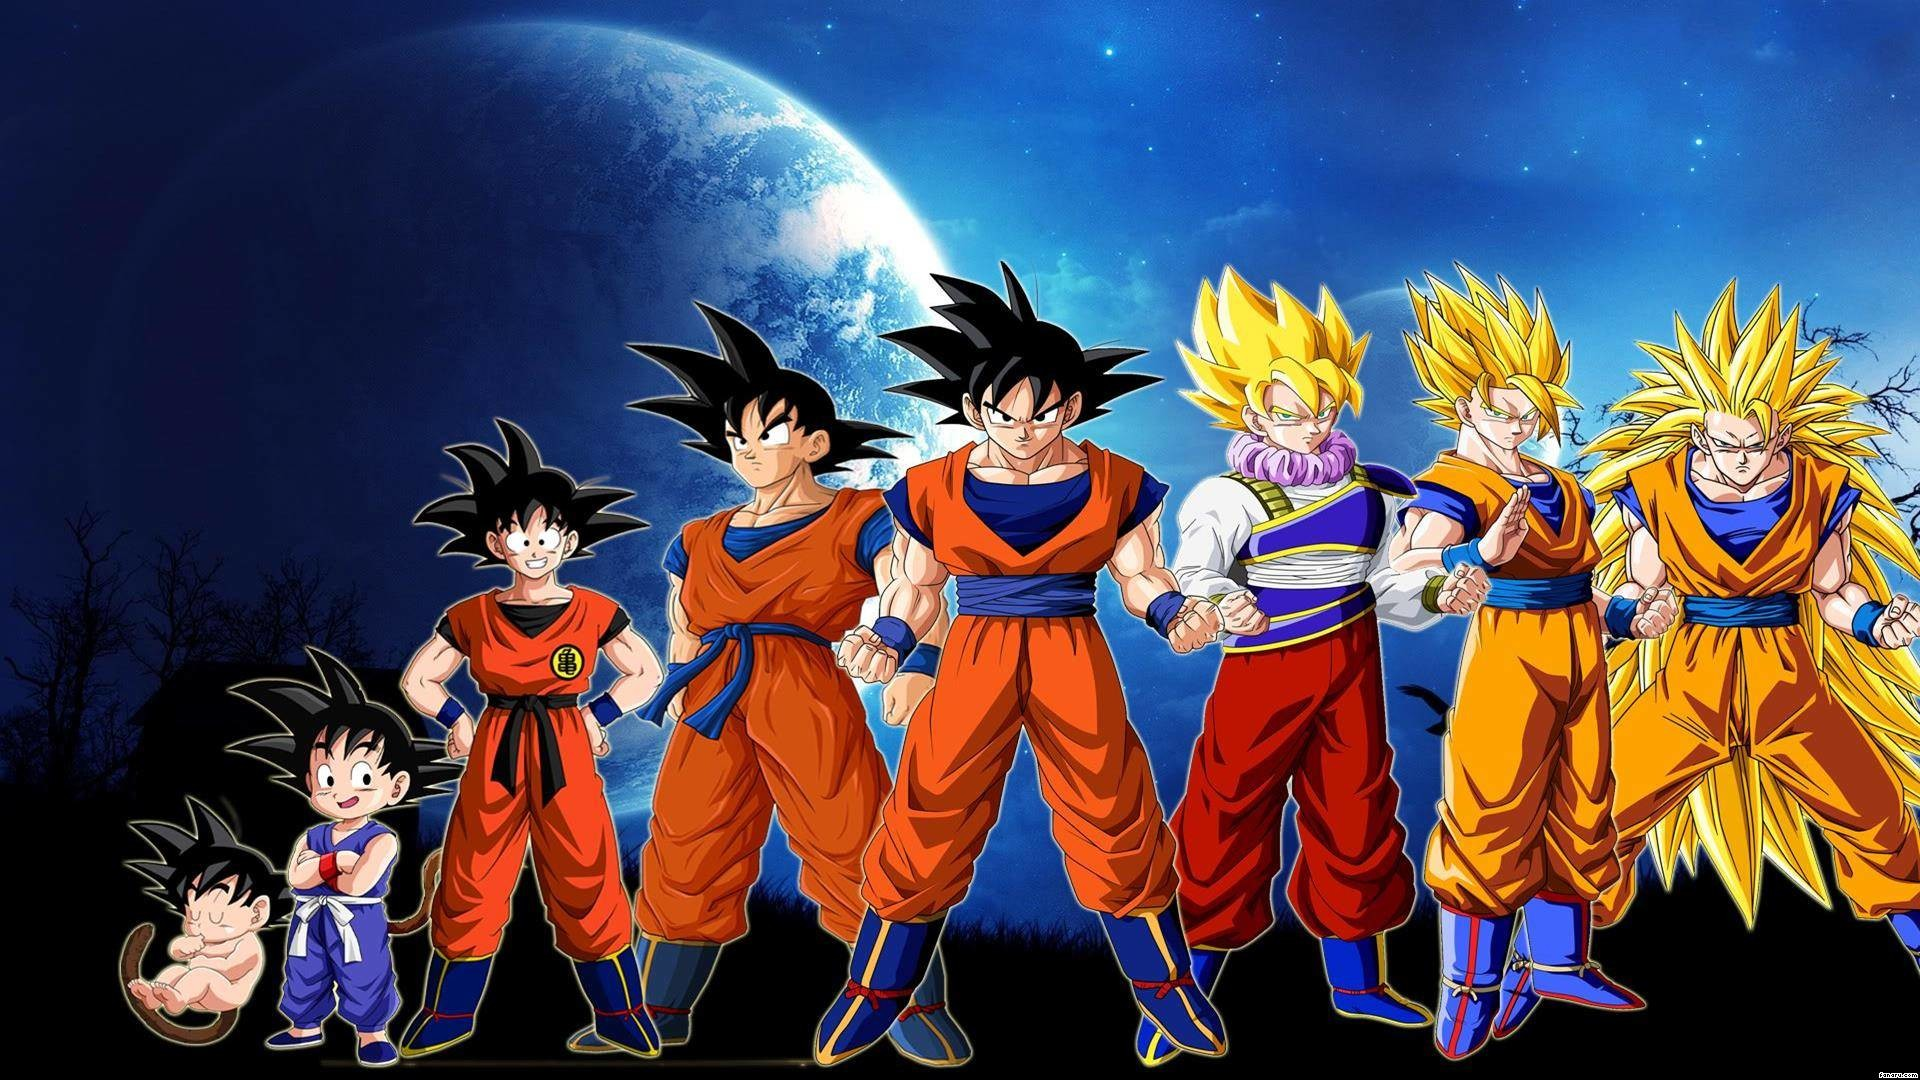 Free Download Dragon Ball Gt Hd Wallpapers X Images Pic Mch022434